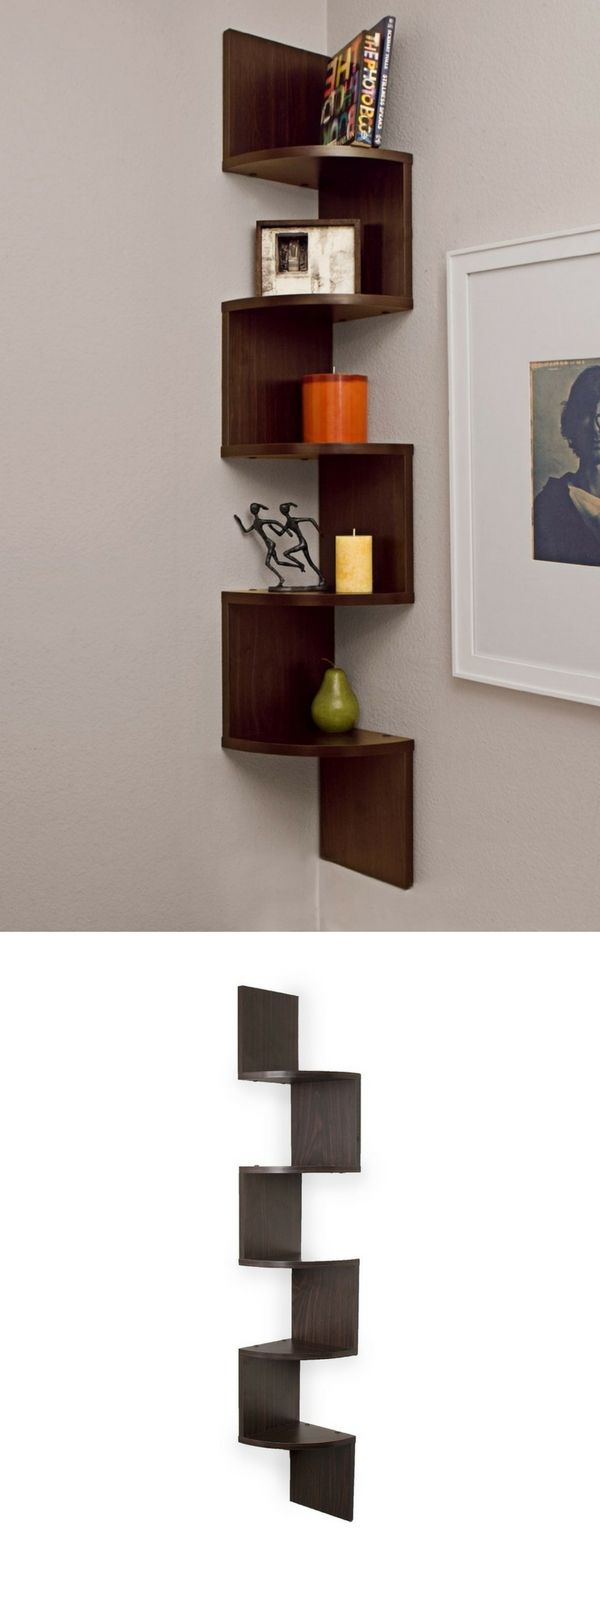 bookshelf for under best mounted org garage shelves ideas shelf wall wire on mount lovely hopeforcreation shelving